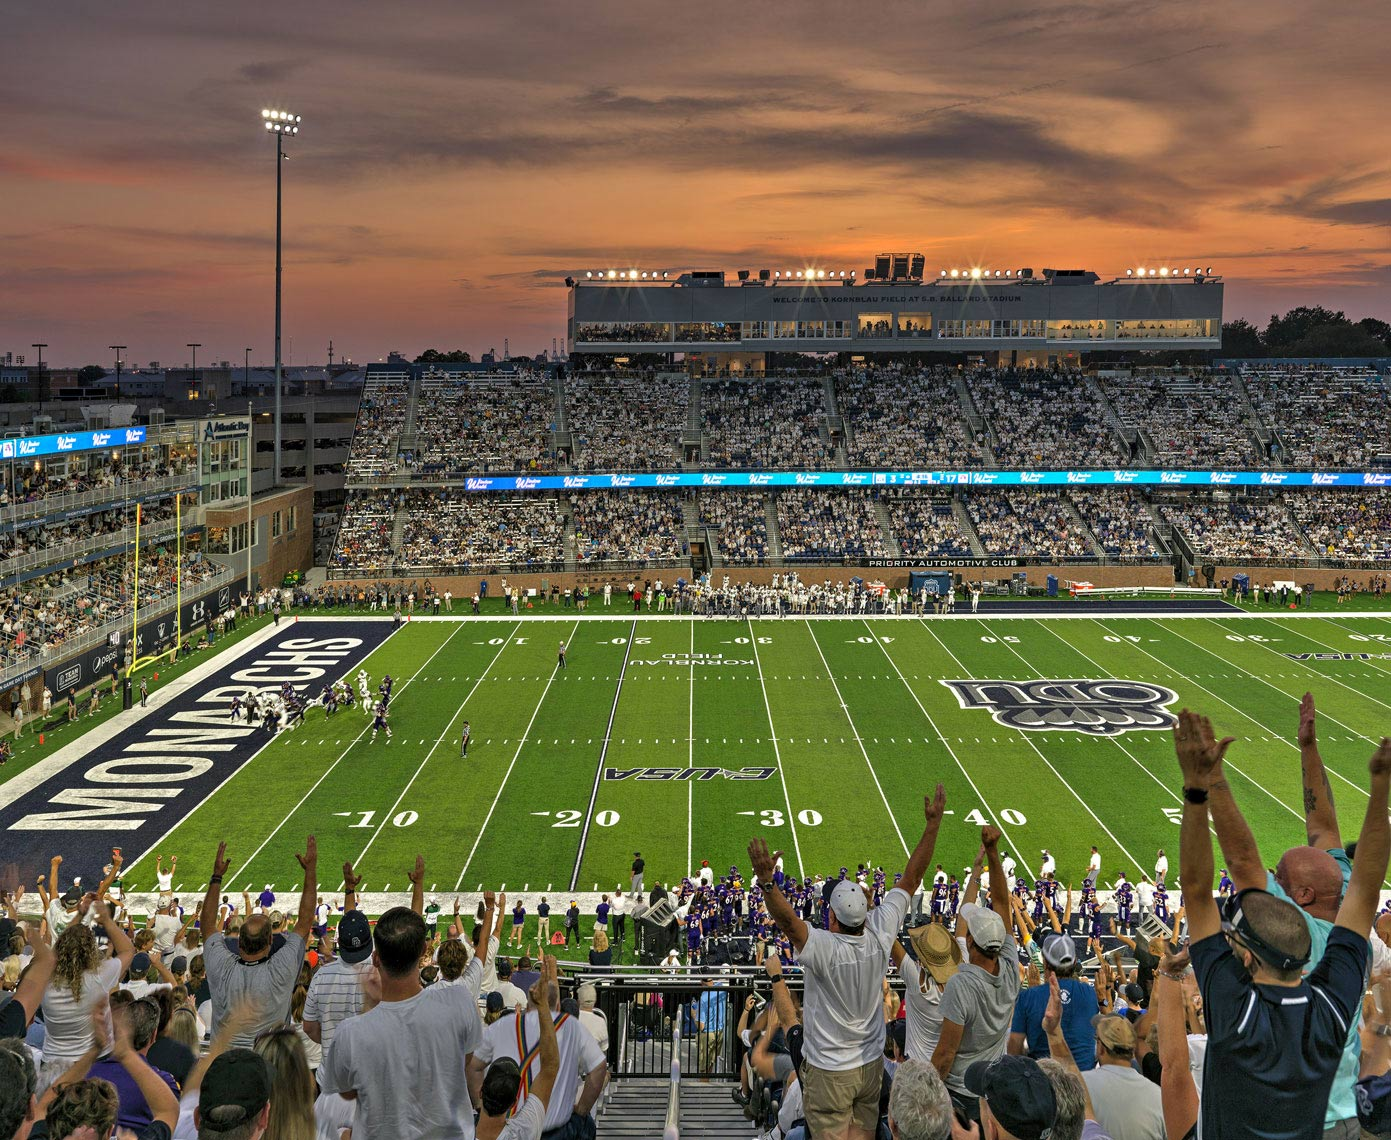 Old Dominion University Ballard Stadium | Maylone Architectural Photo